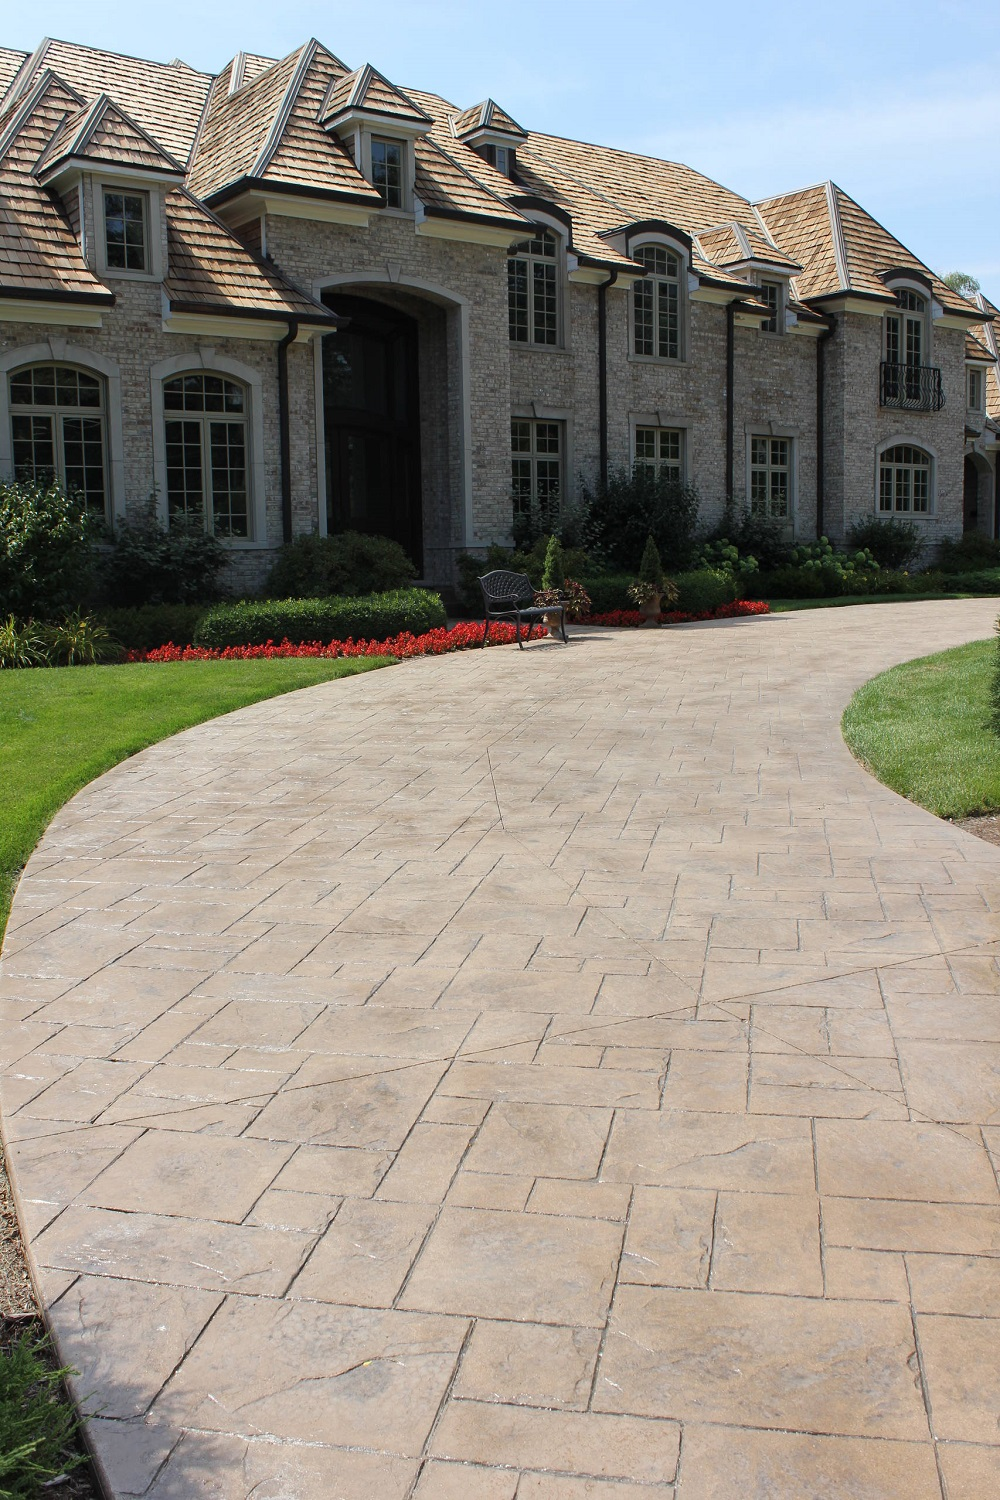 dw10 The types of driveways you could have for your home